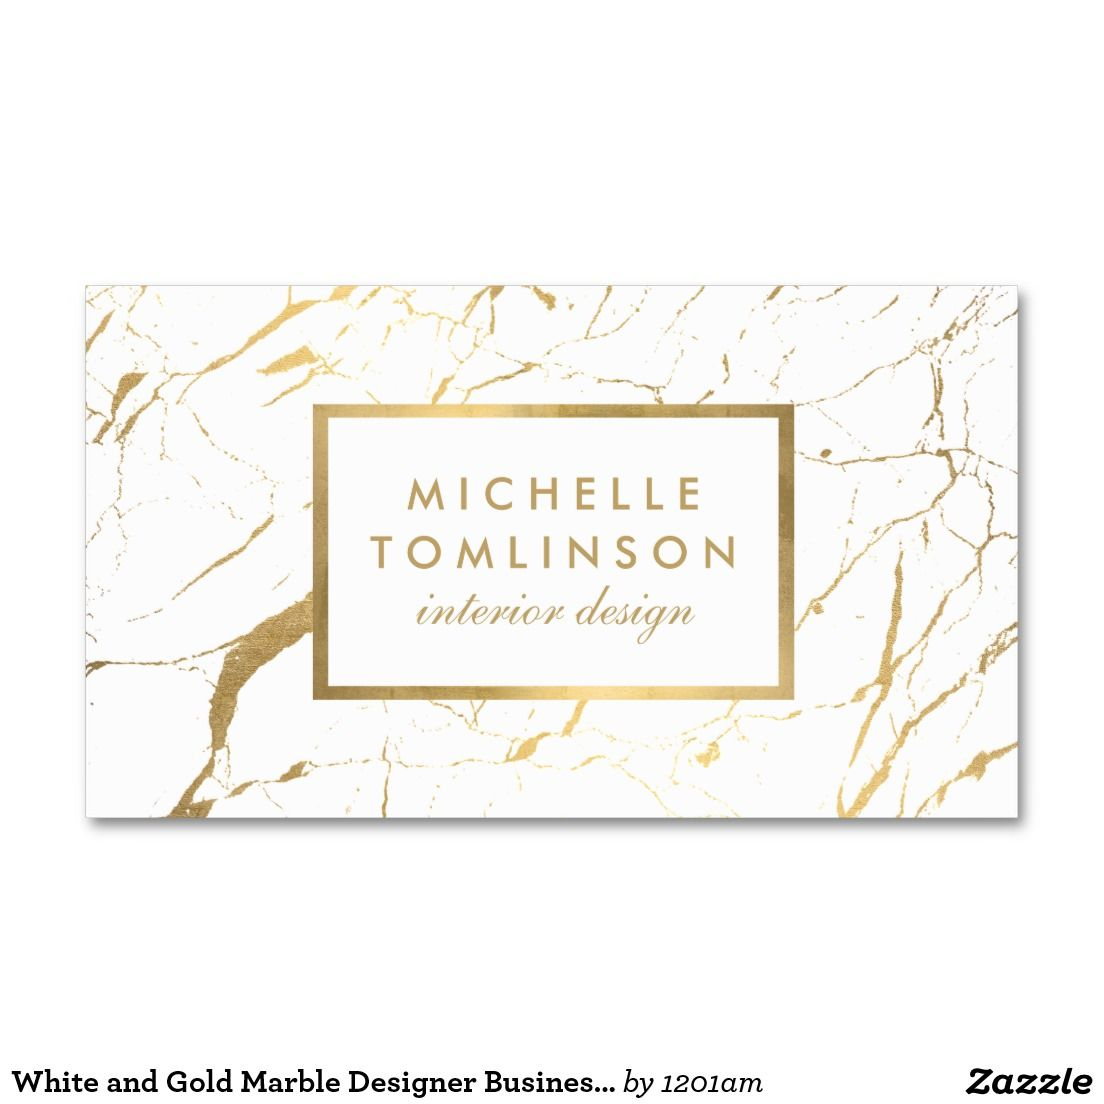 White and Gold Marble Interior Designer Business Card | Graphic ...